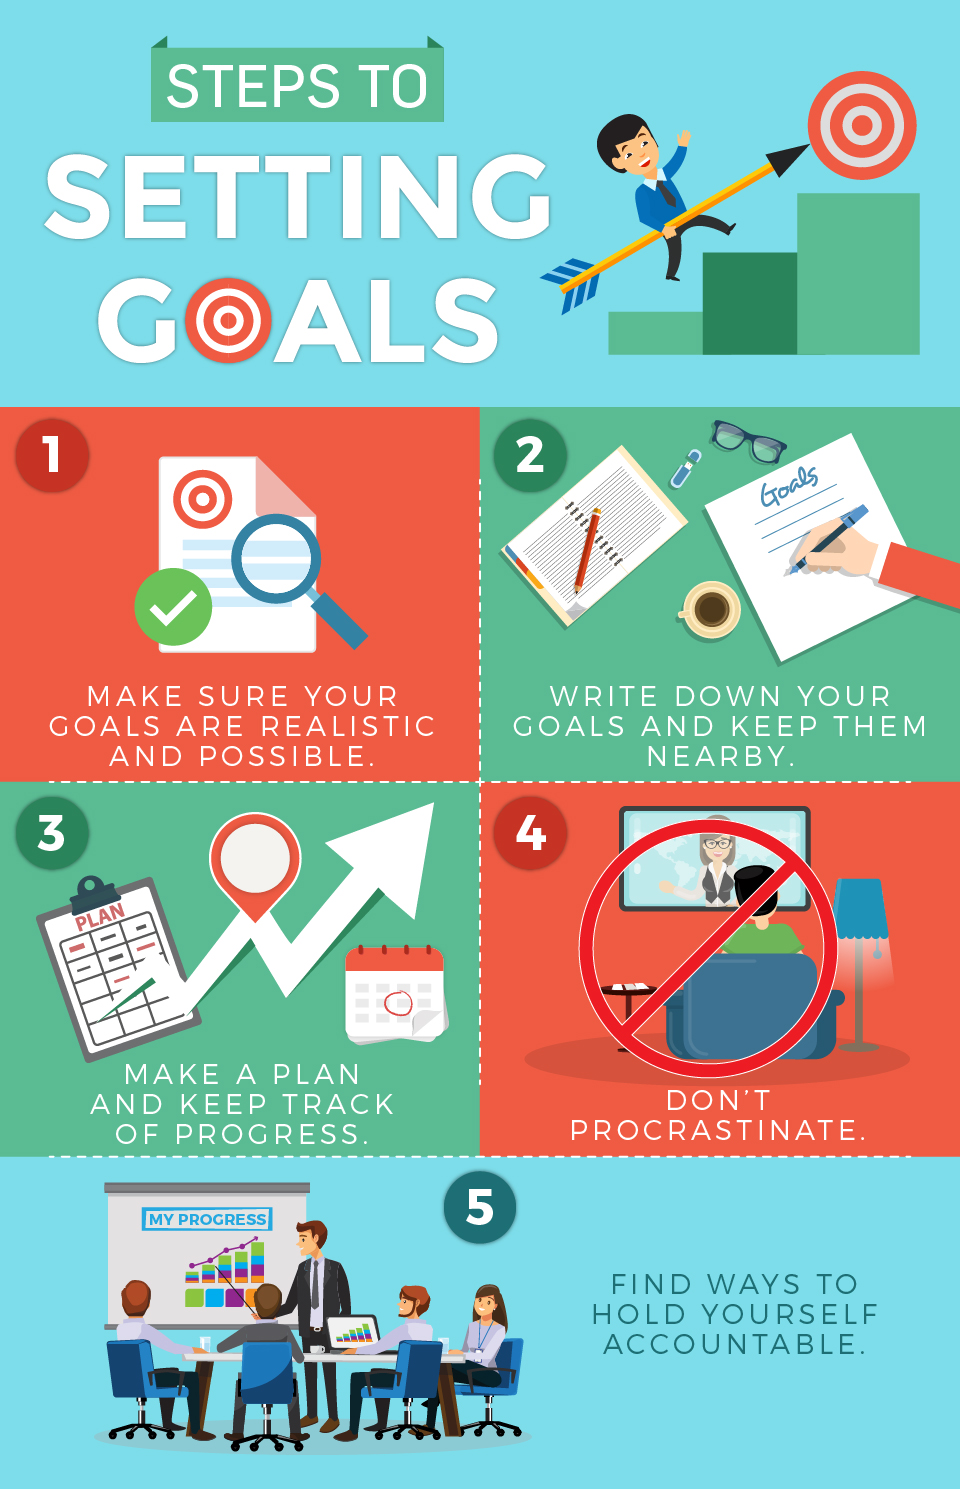 Steps to Setting Goals